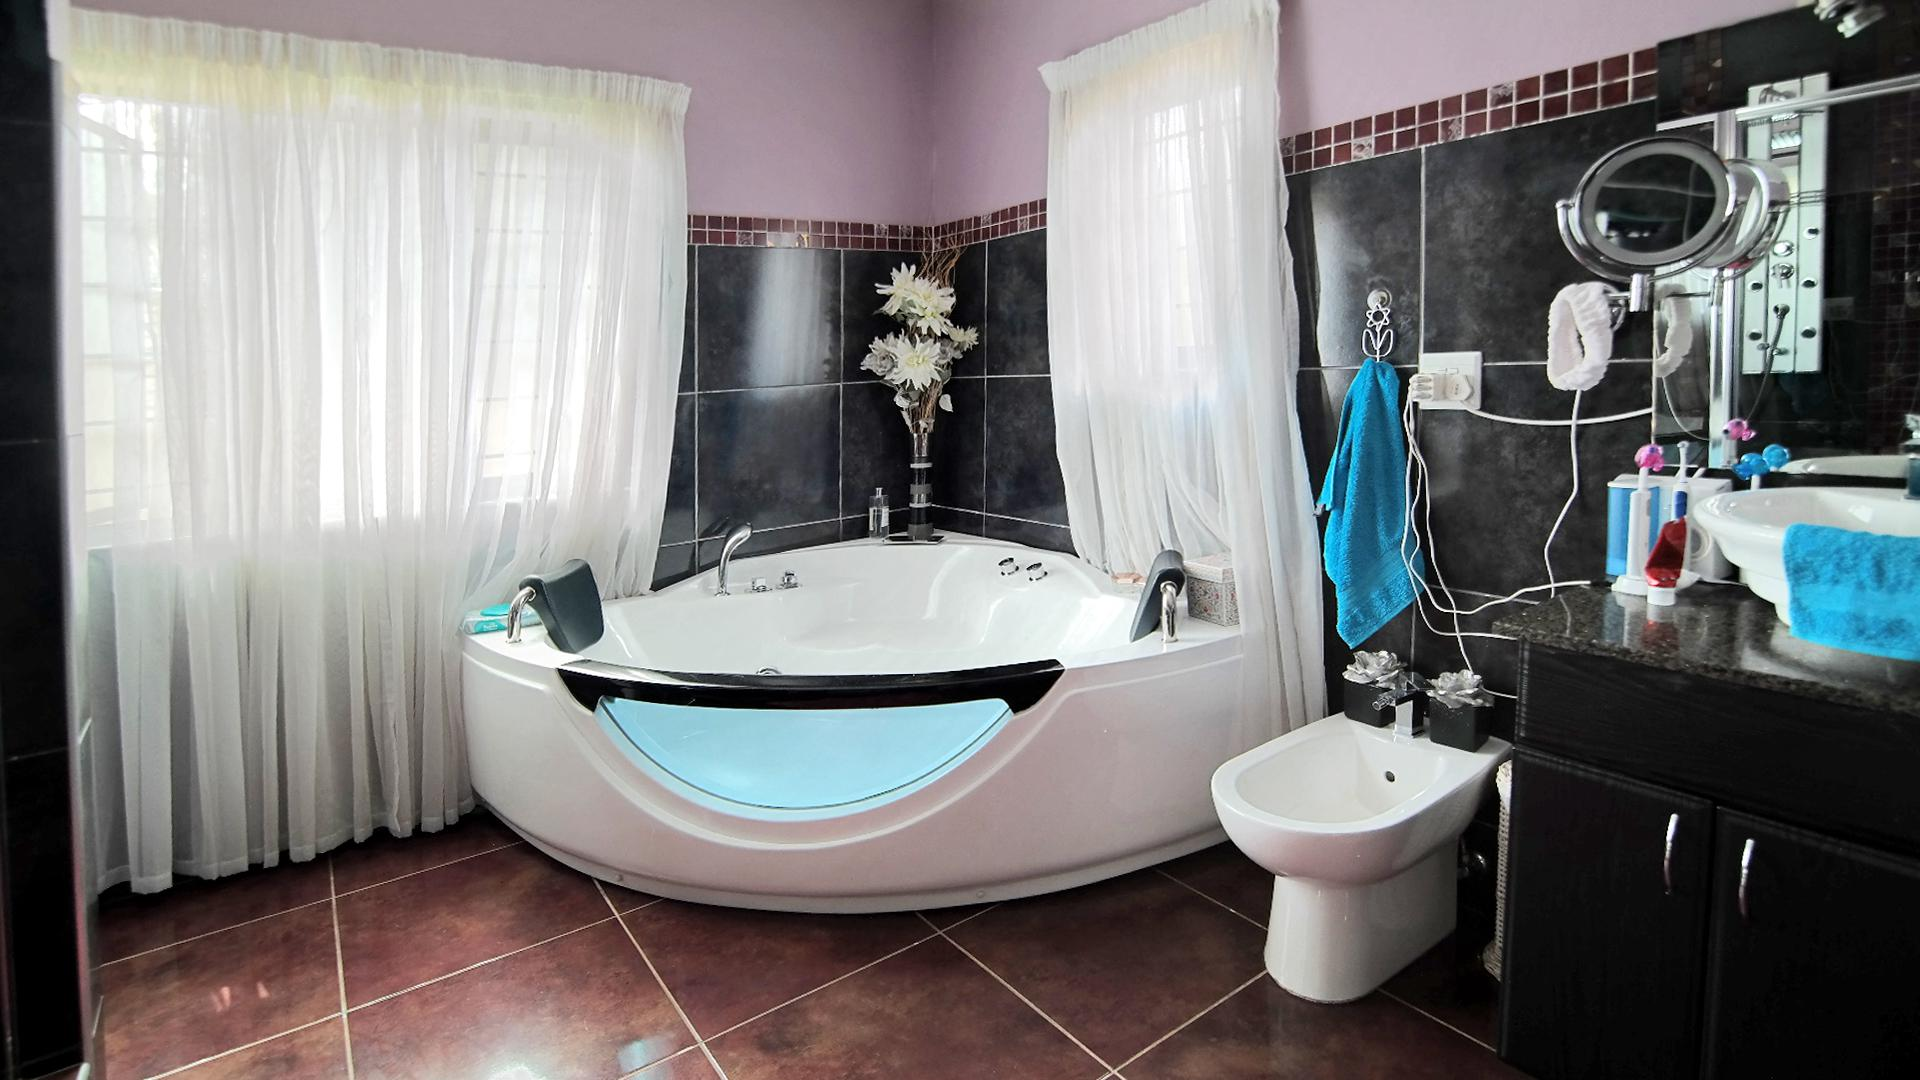 3 Bedroom House for sale in Montana ENT0066308 : photo#25